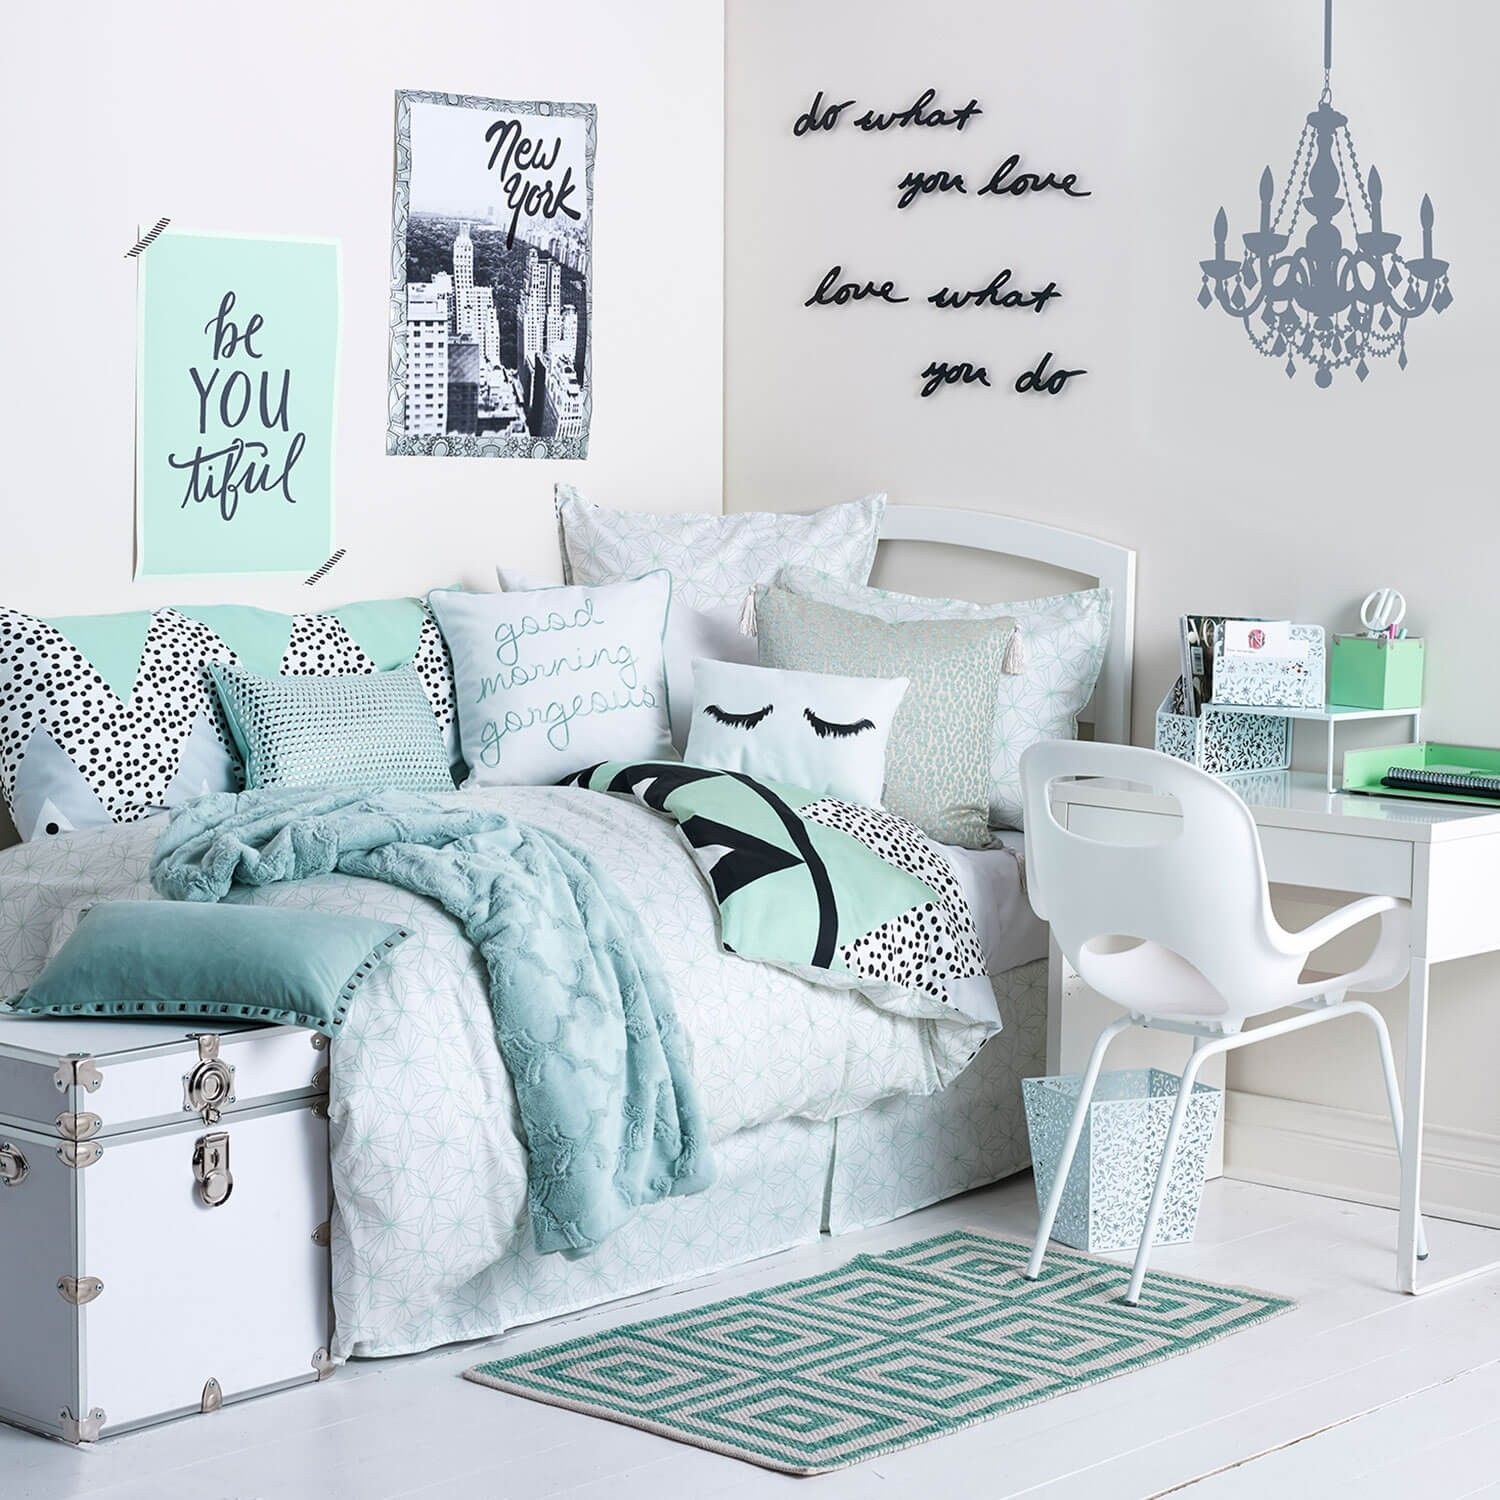 Gorgeous Uptown Dorm Room Decorating | College Dorm Decorating ...